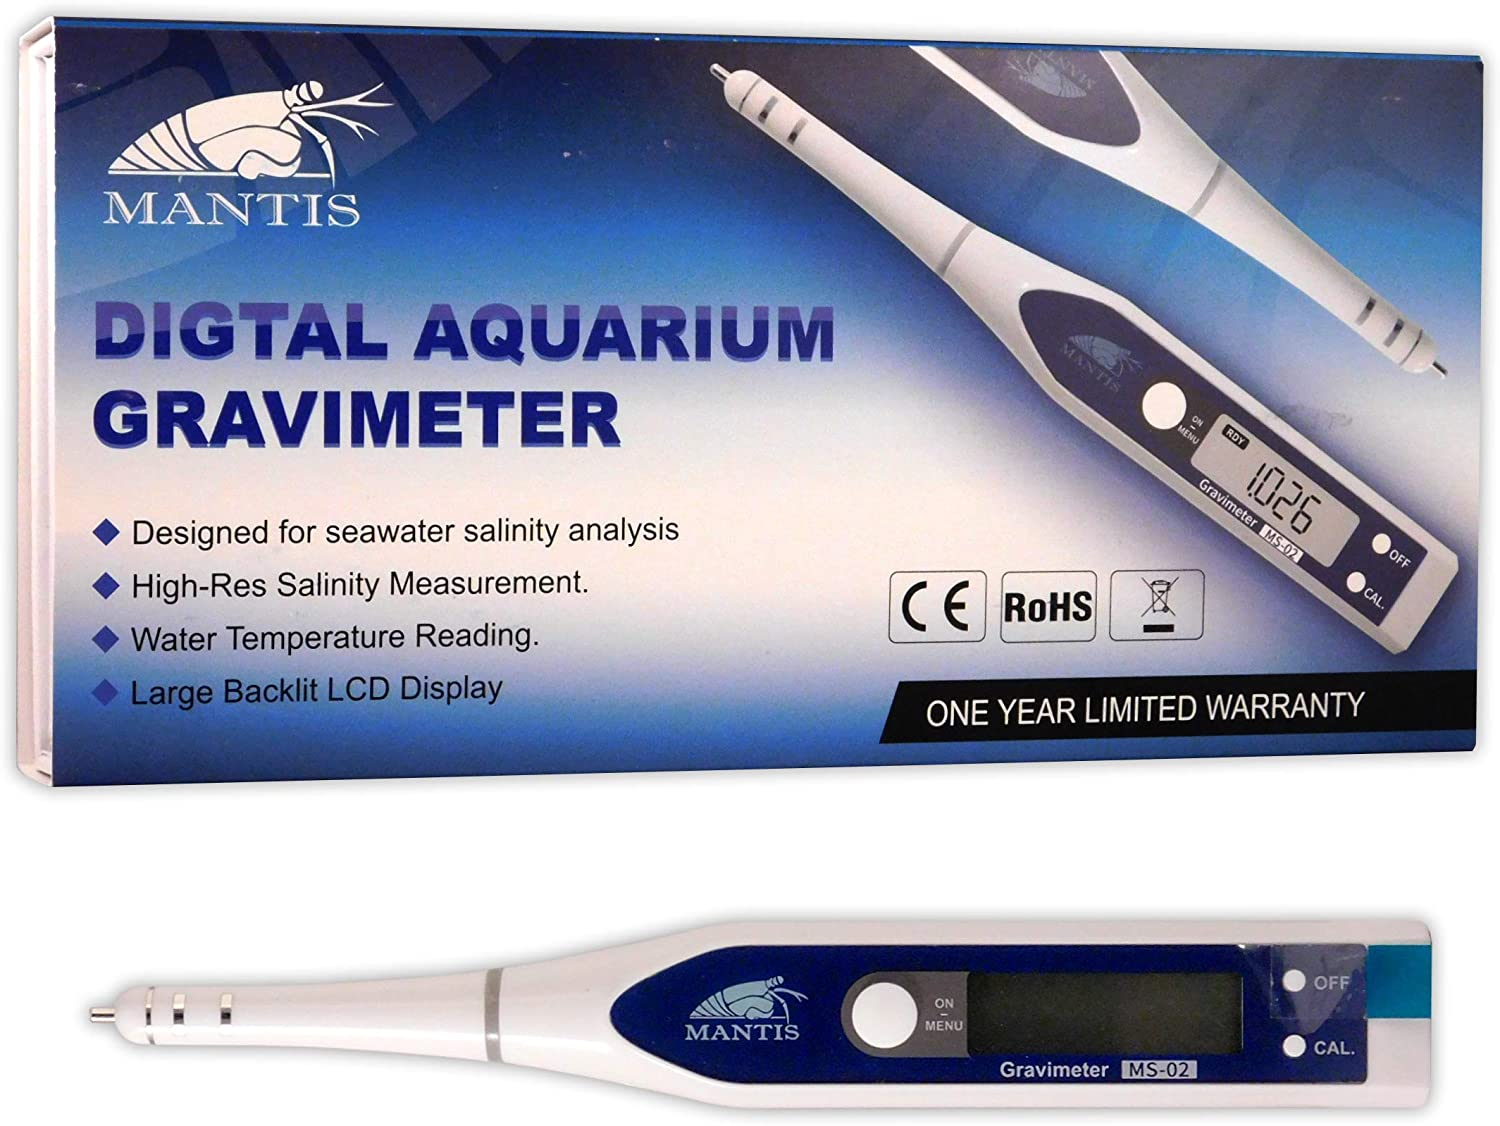 Mantis Digital Gravimeter